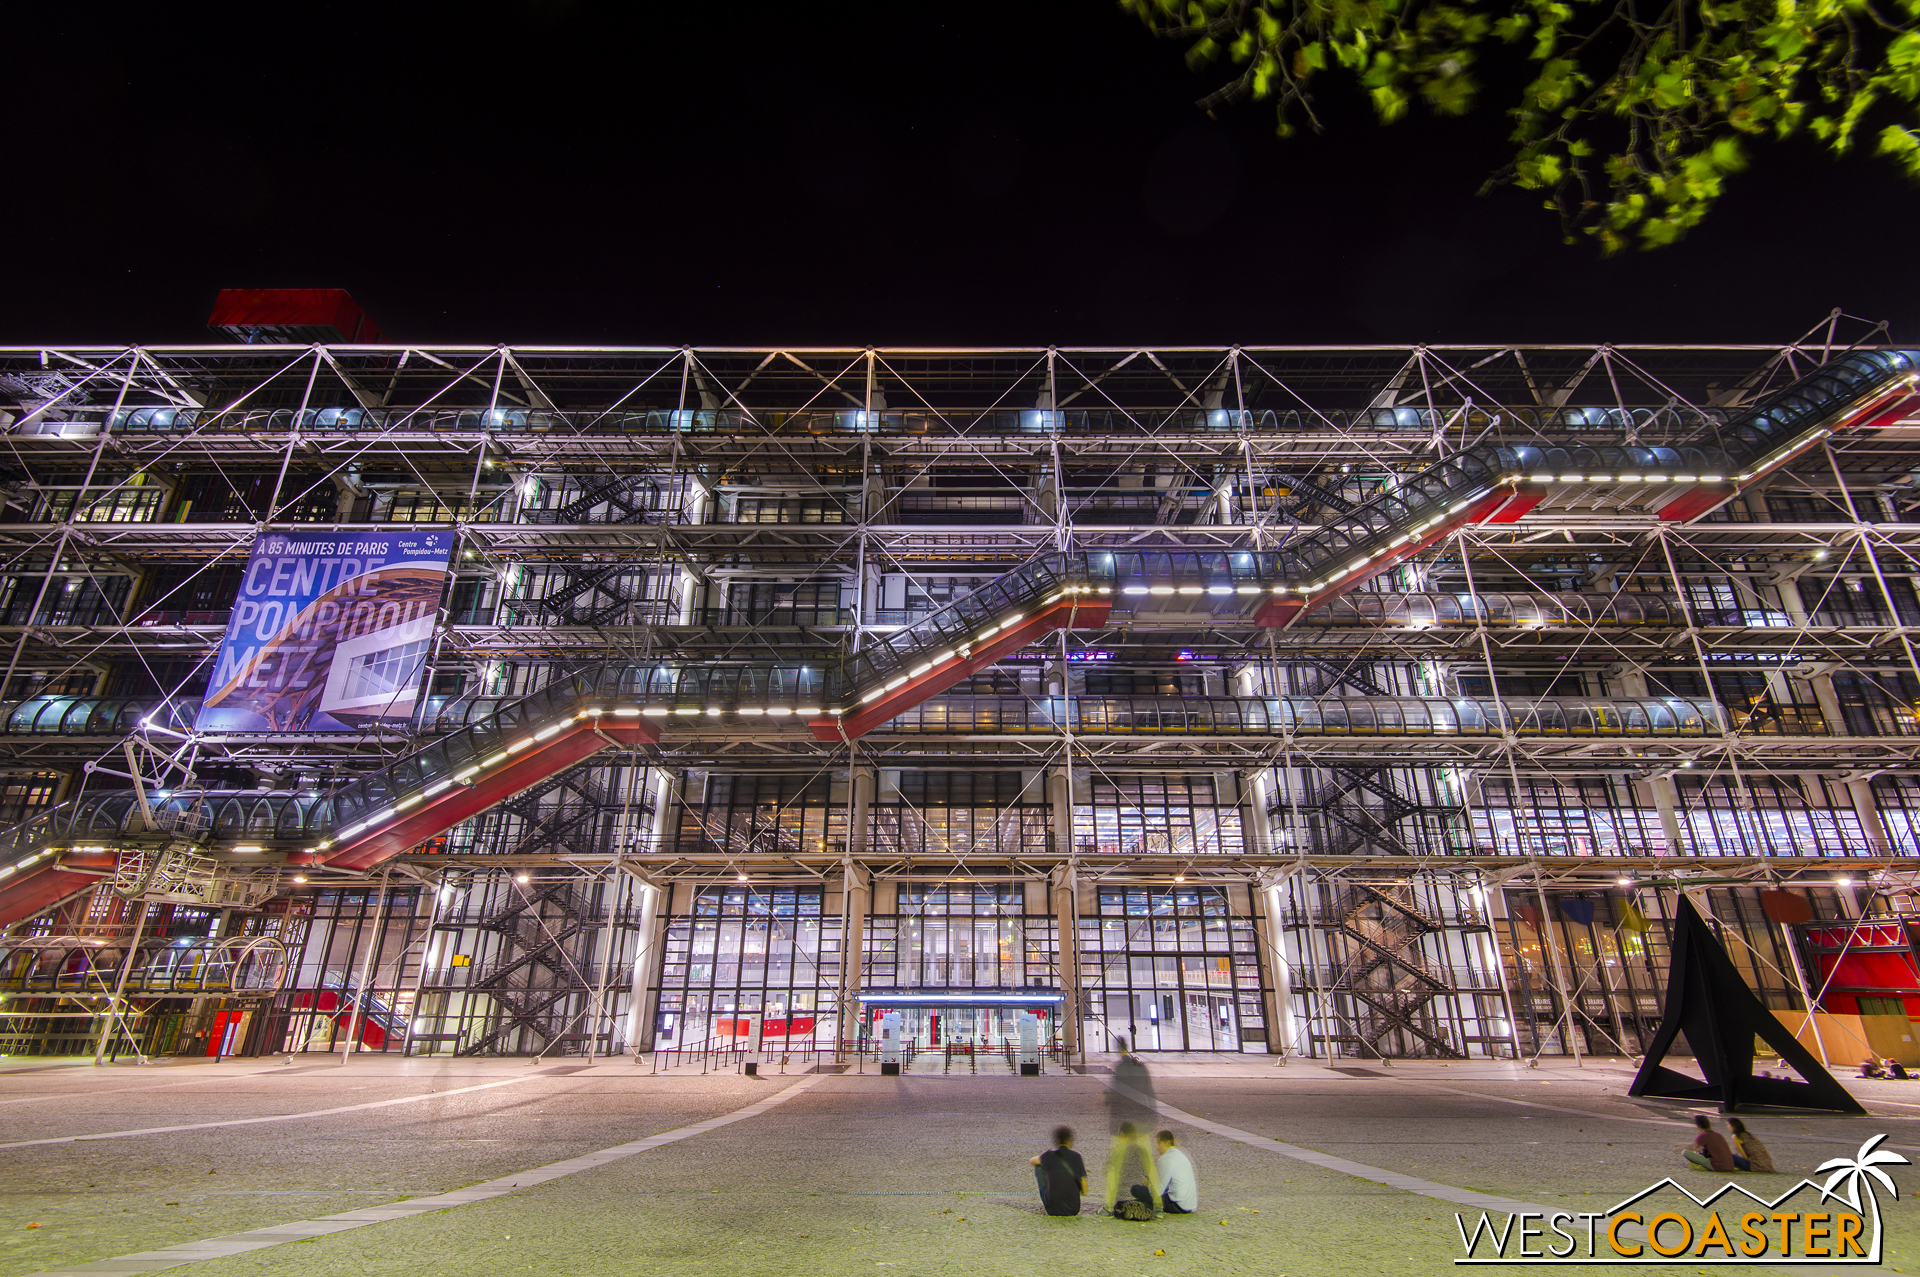 The Pompidou Center is home to modern art. Like most Parisian icons, it was once revolted but is now beloved.